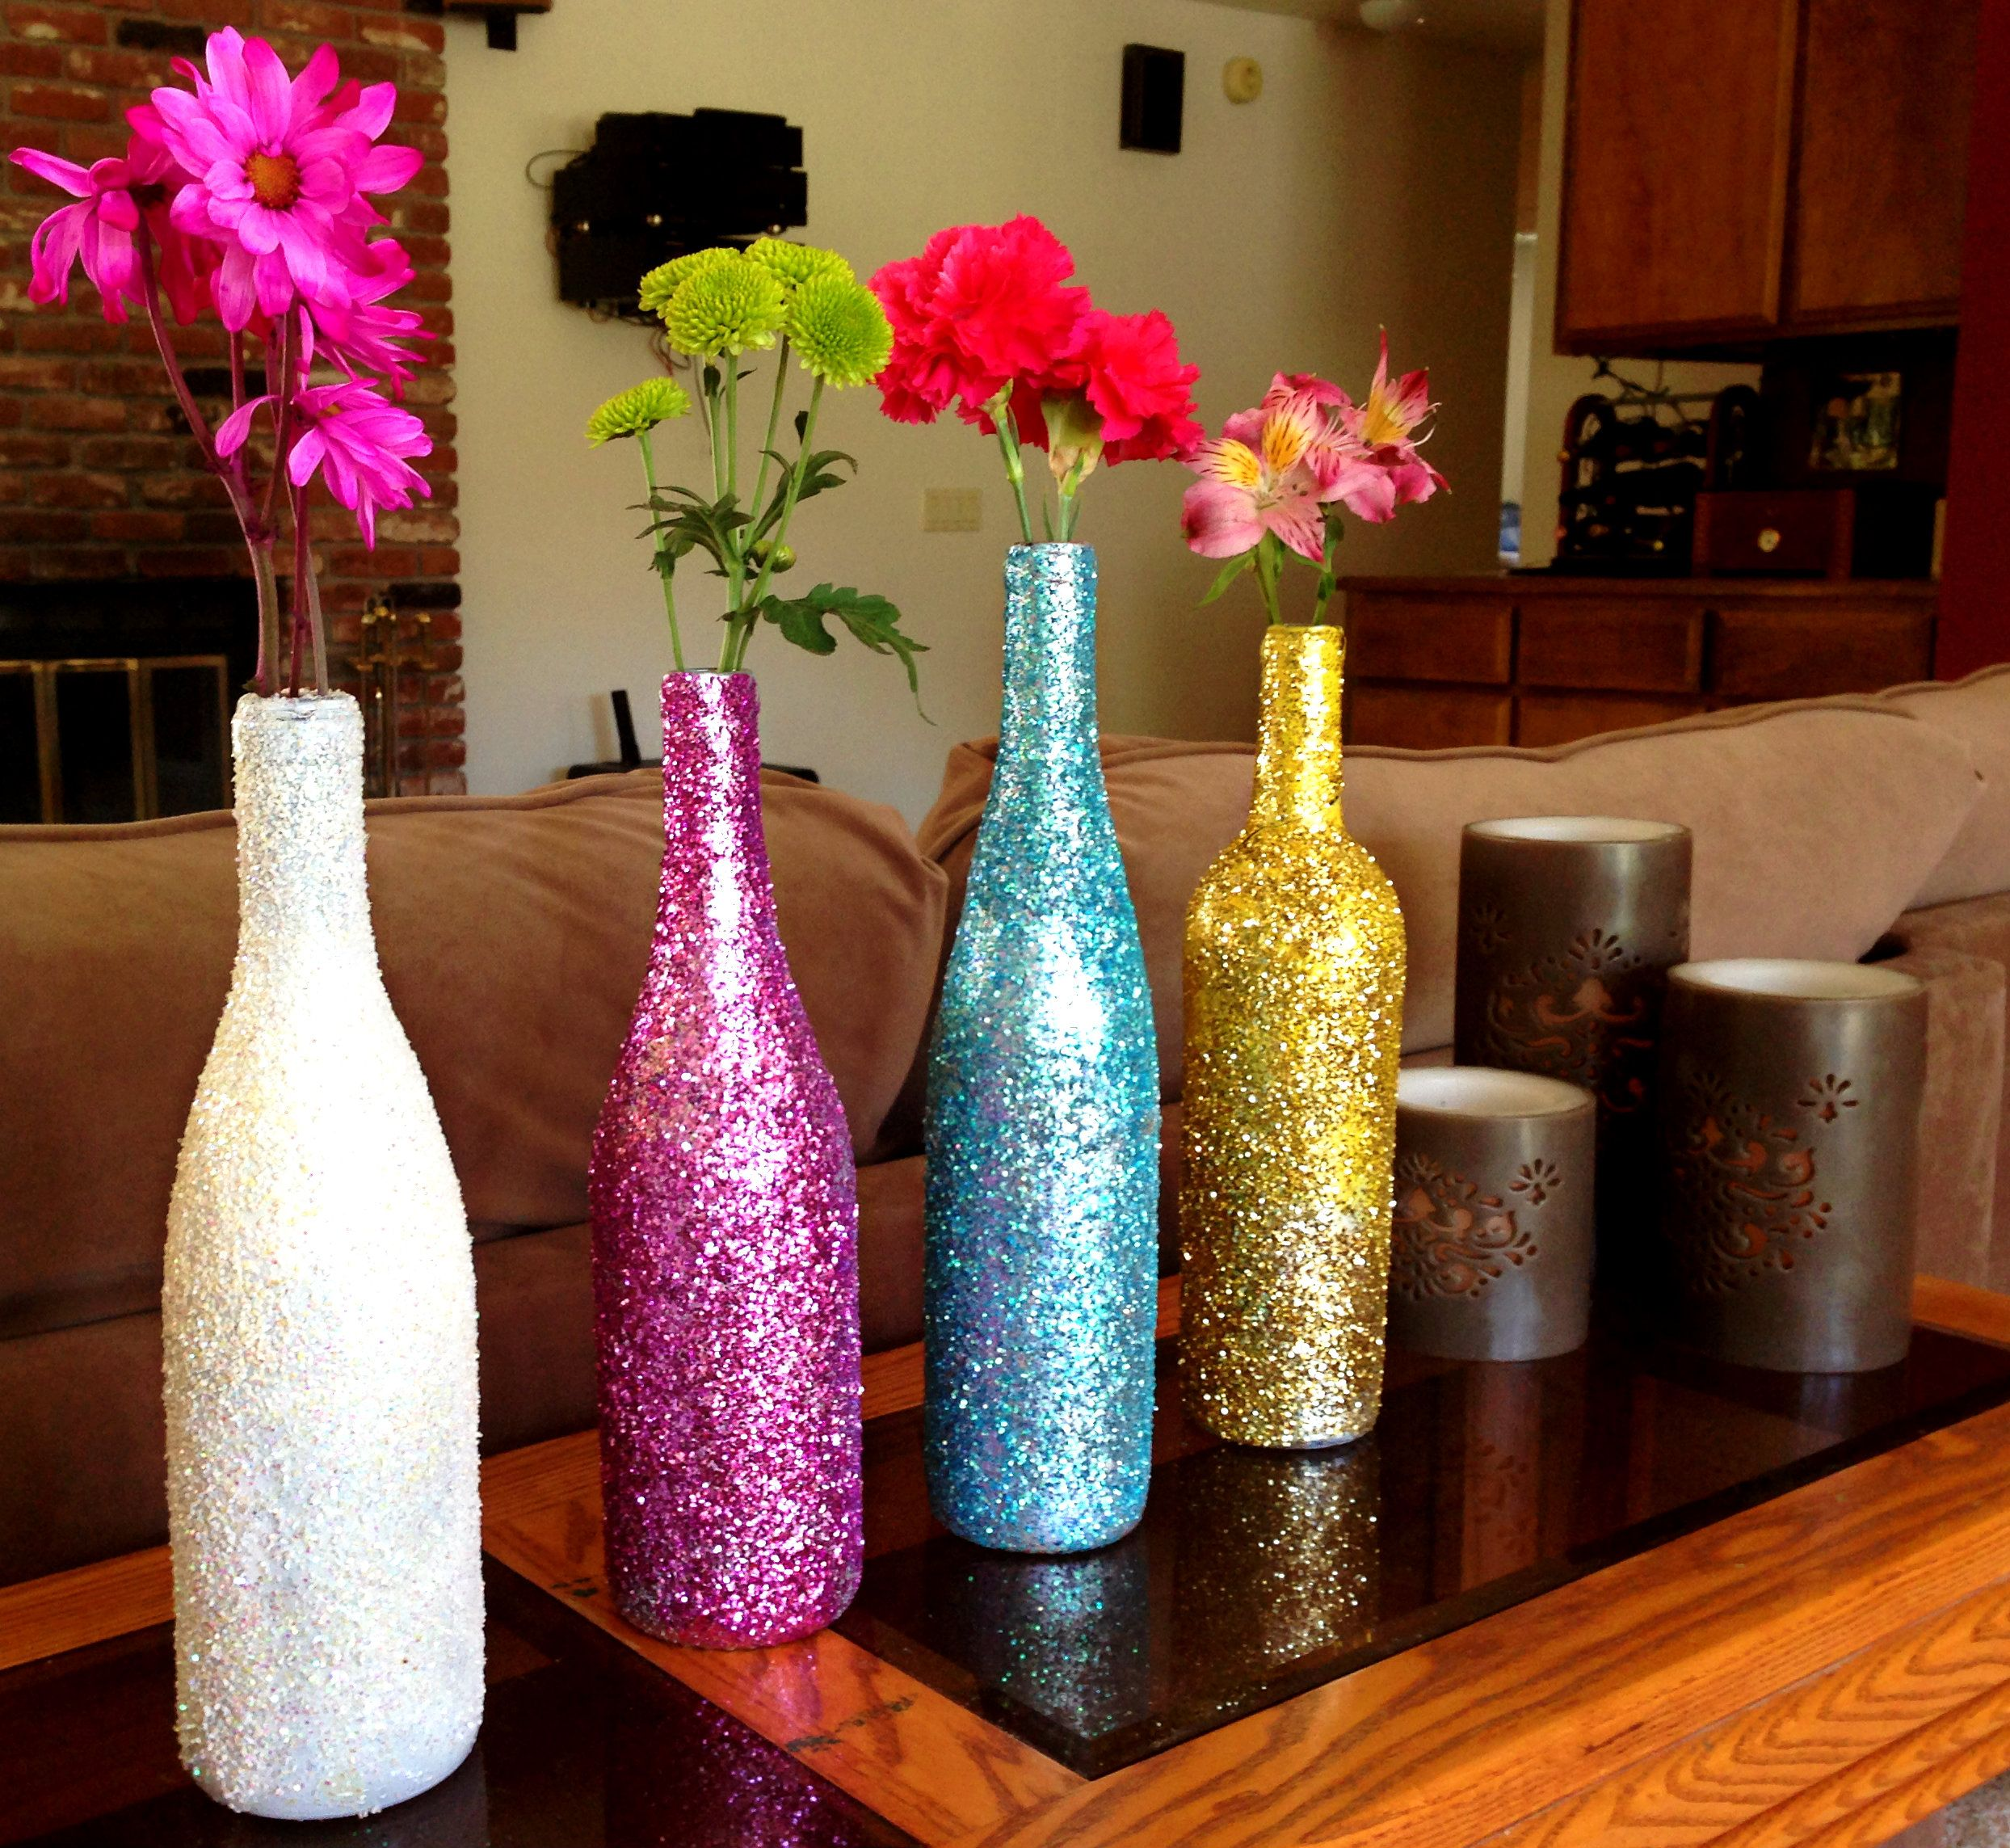 Decorating Wine Bottles With Glitter Creative Diy Apartment Decorating Ideas  Dorm Bottle And Wine